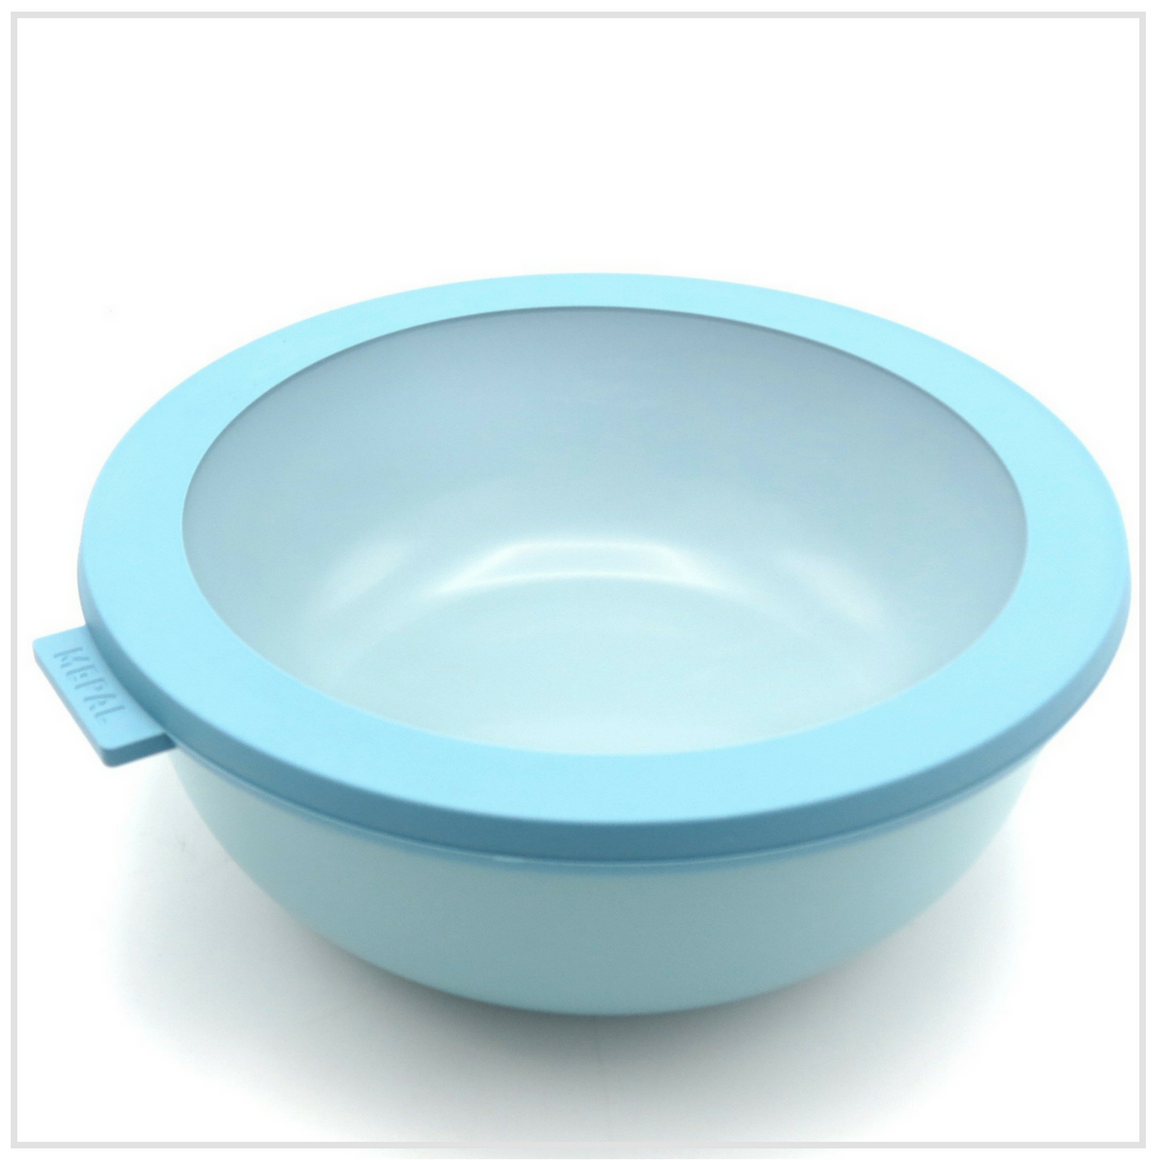 Cirqula Bowl 2250 ml - Nordic Green